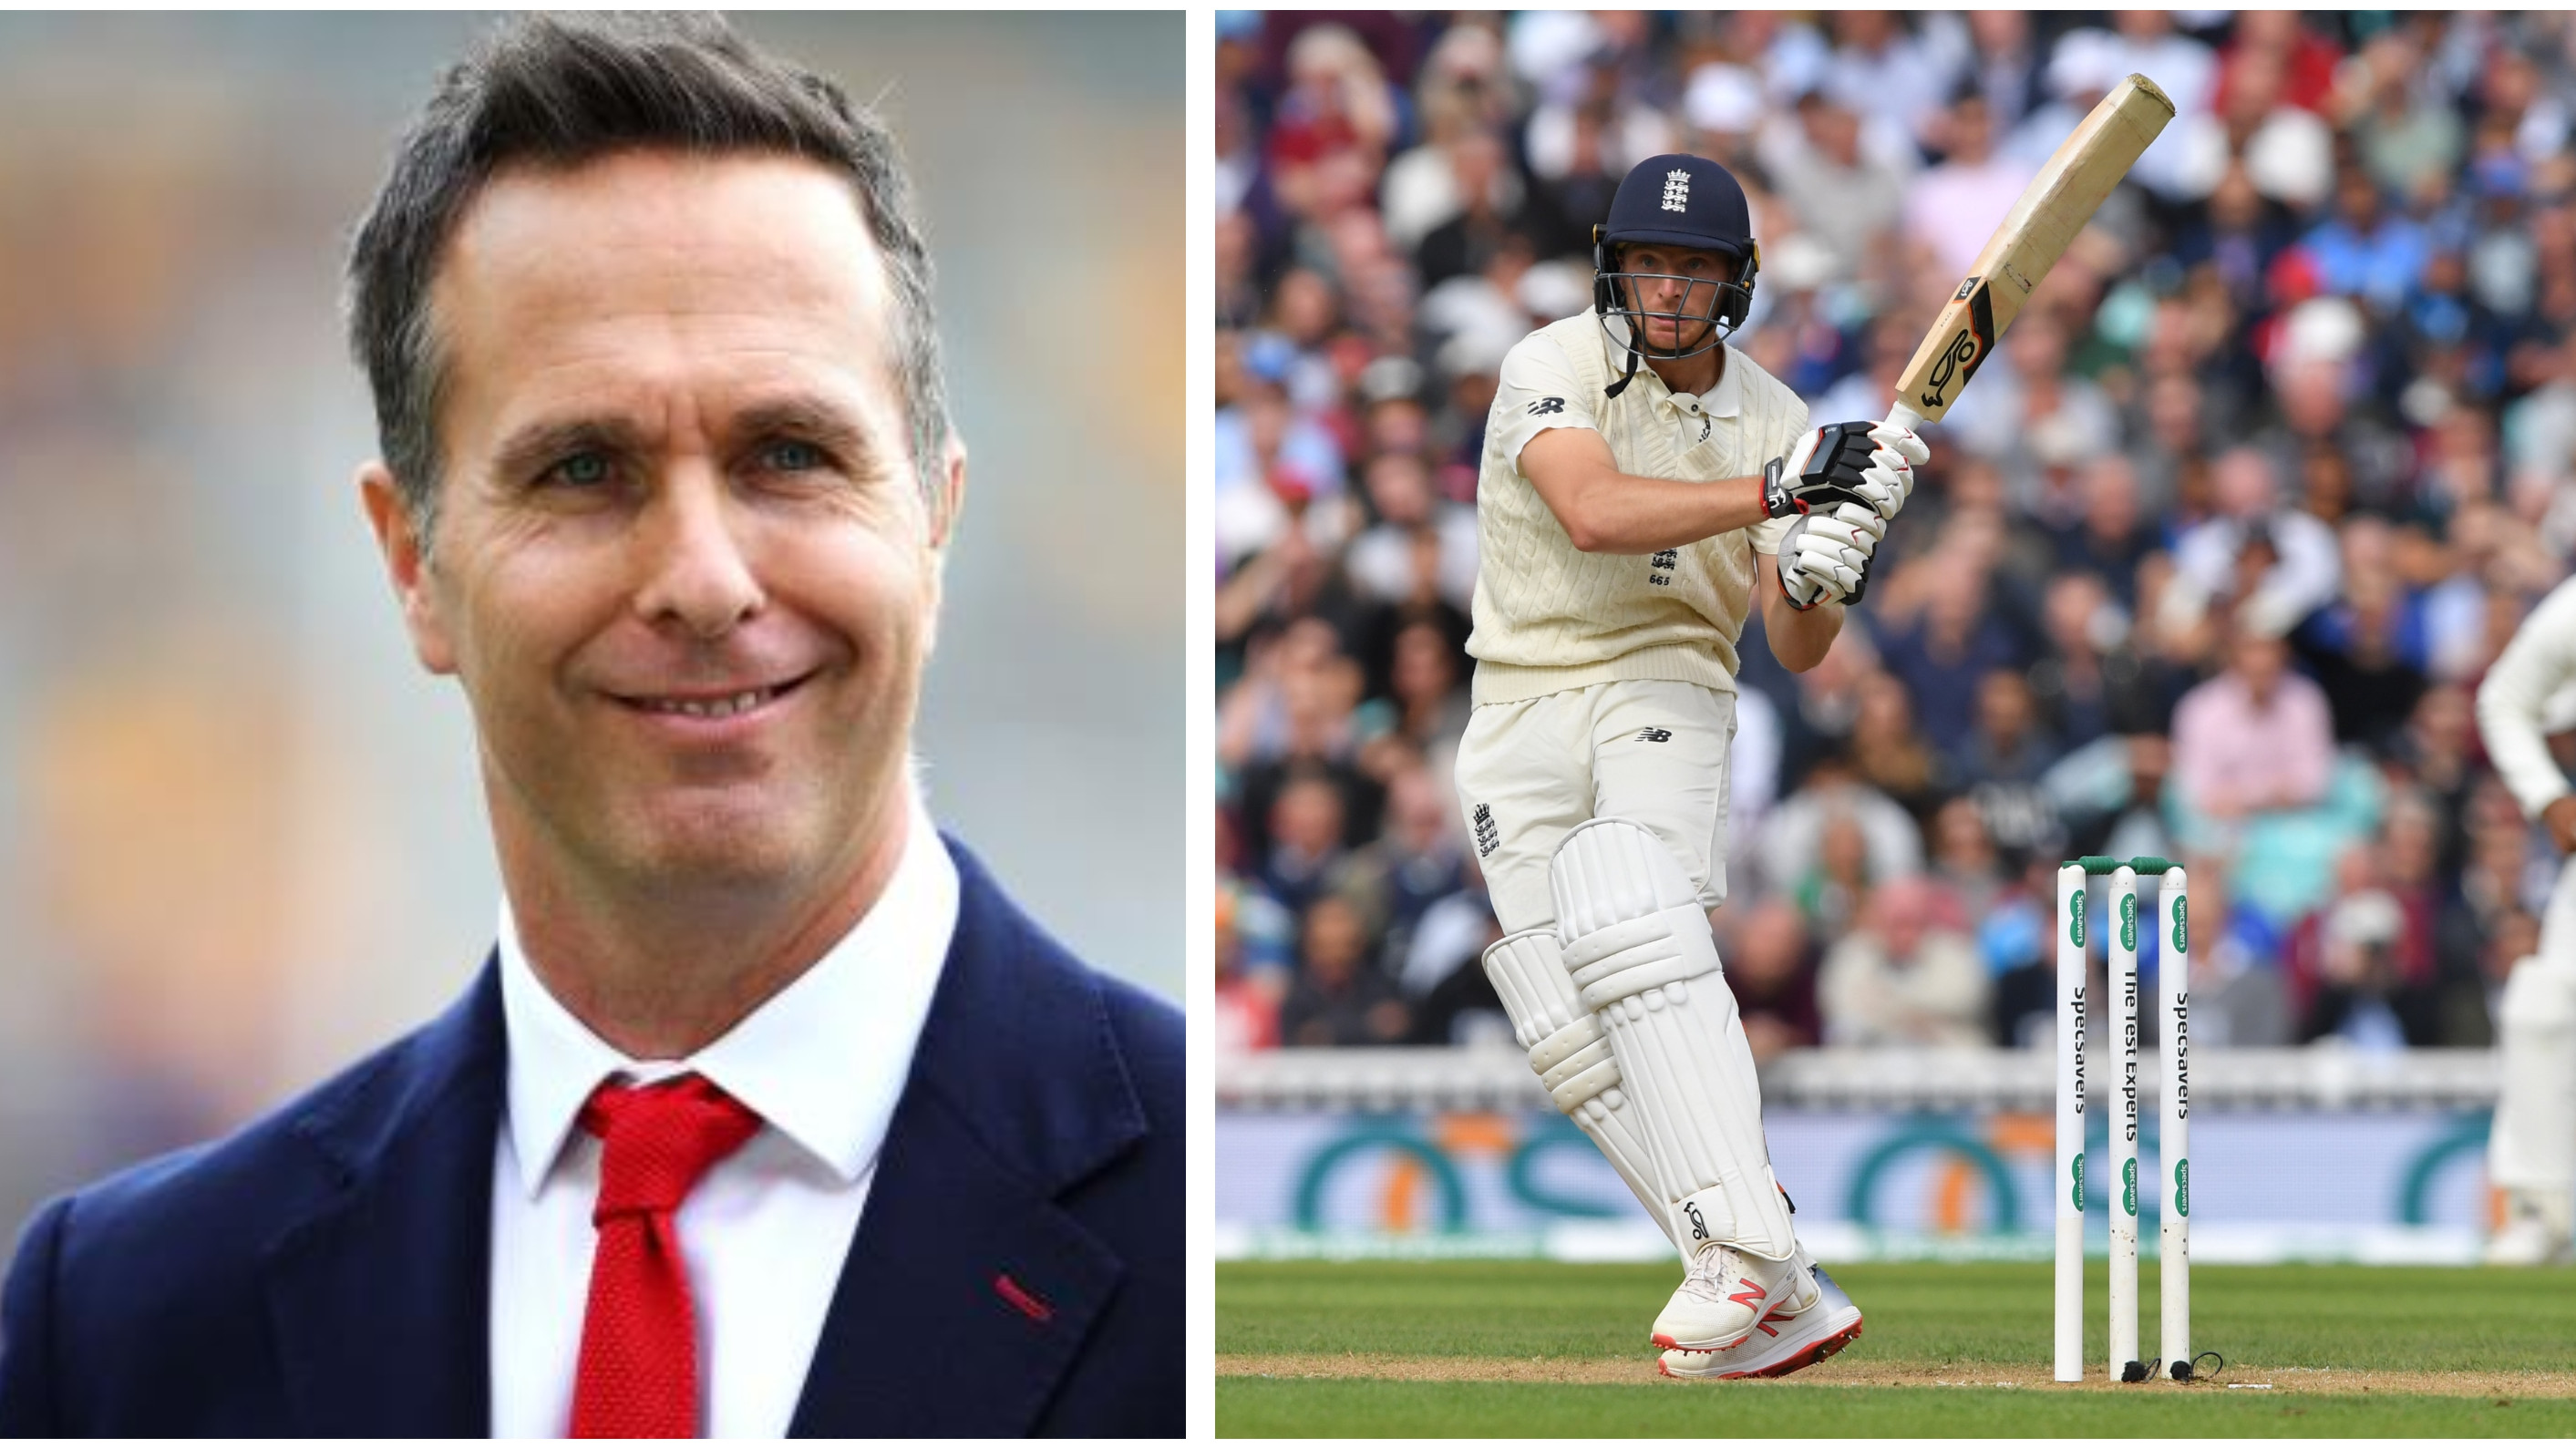 ENG vs IND 2018: England have got a special player in Buttler, says Michael Vaughan